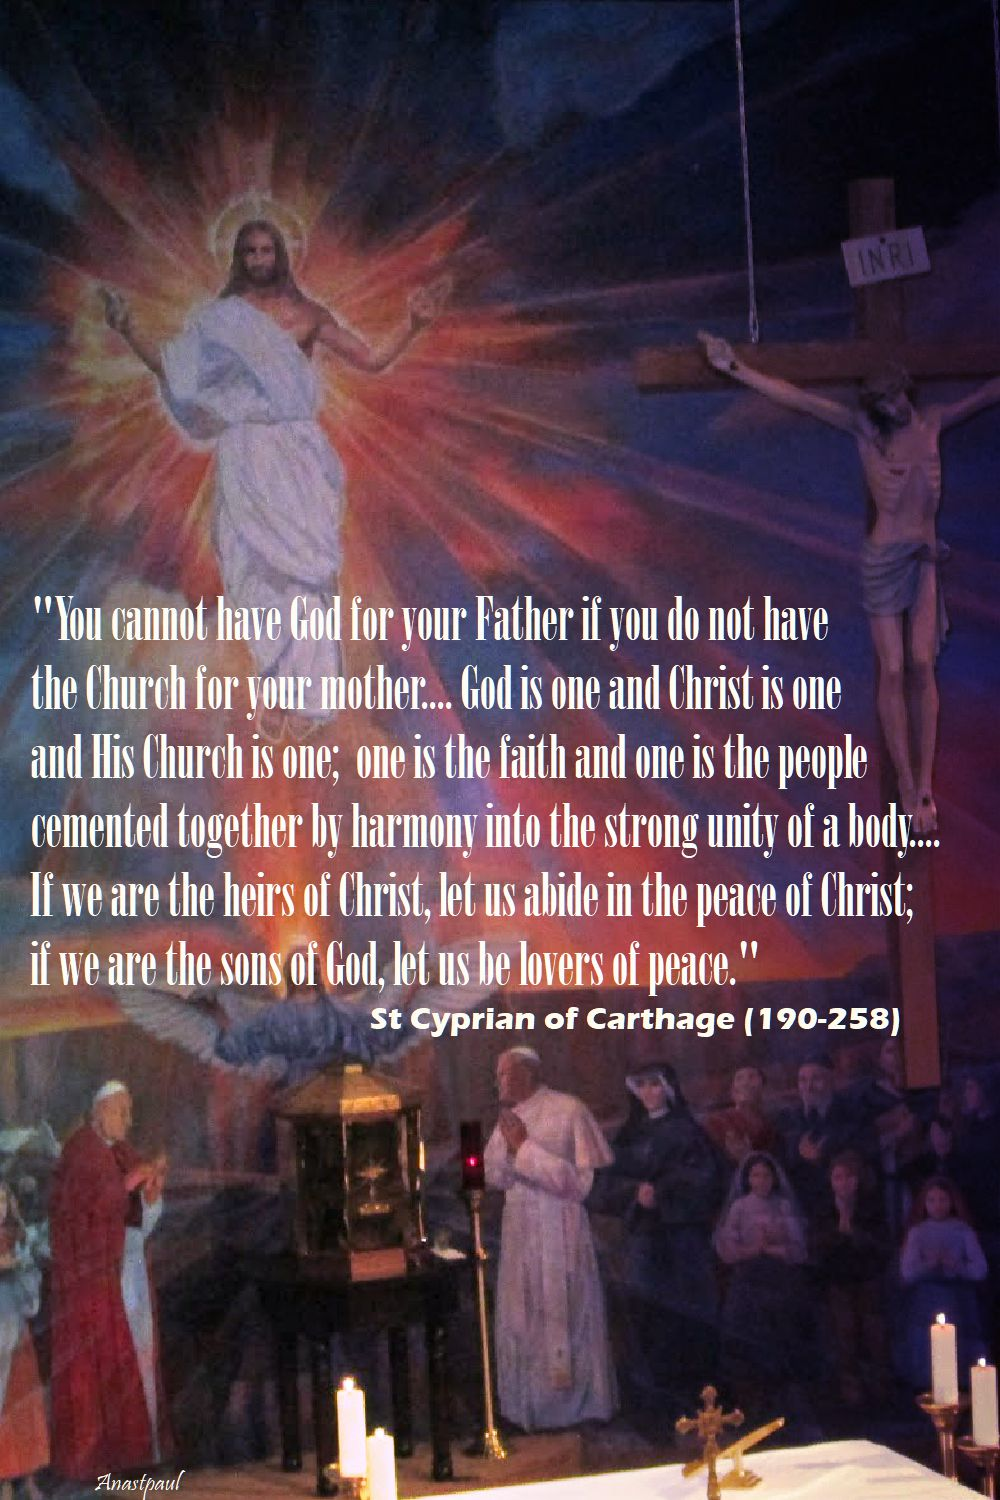 you cannot have god for your father - st cyprian of carthage